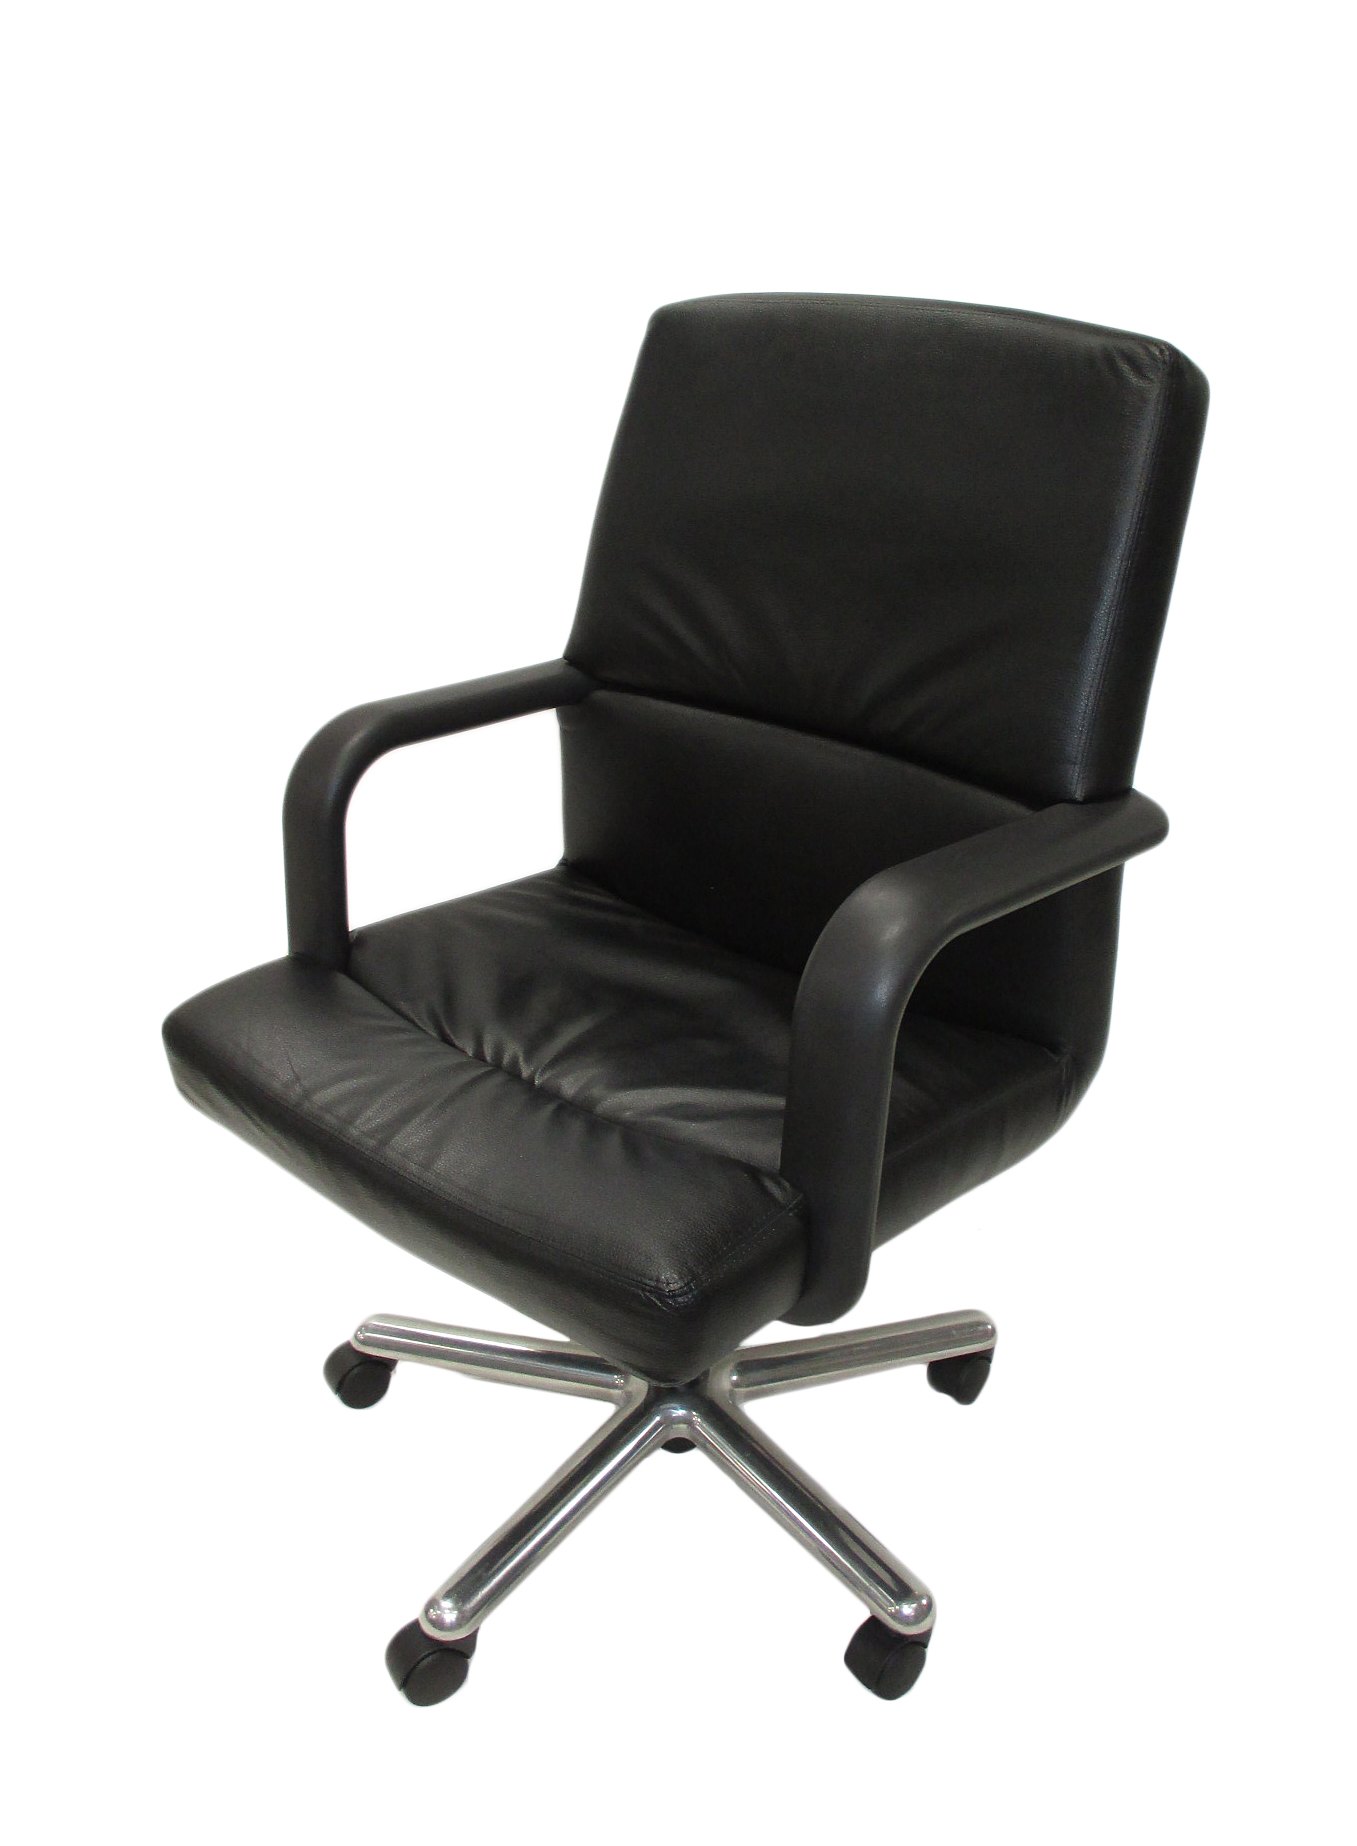 used office chairs ergonomic chair nairobi brayton intl technique mid back conference open arms